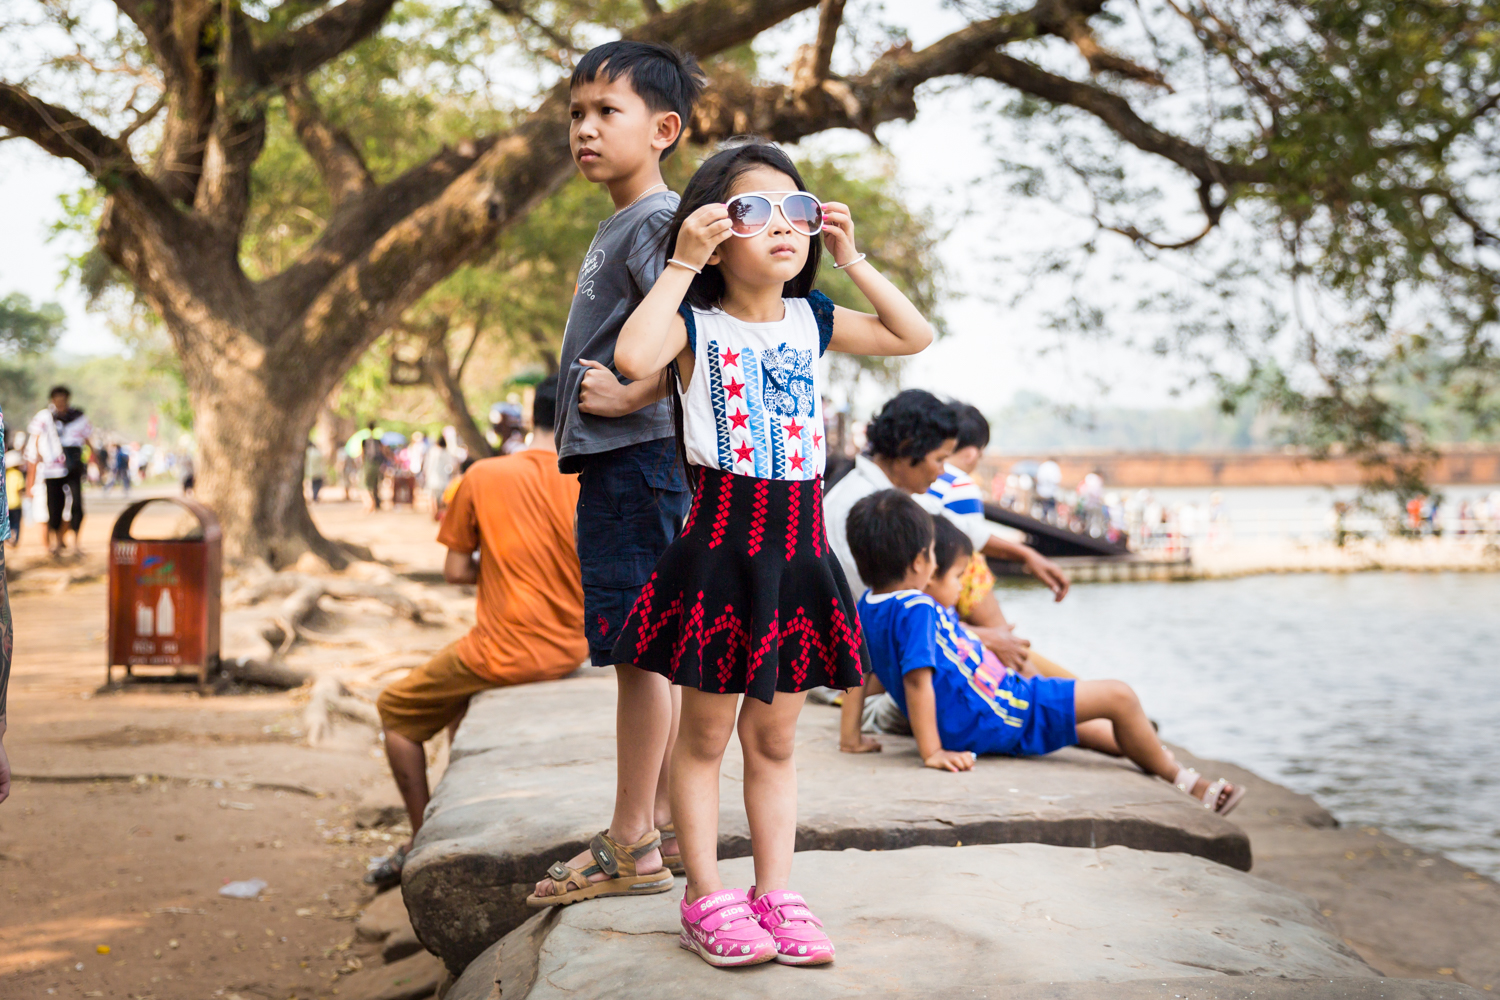 little-girl-sunglasses-angkor-wat-cambodia.jpg